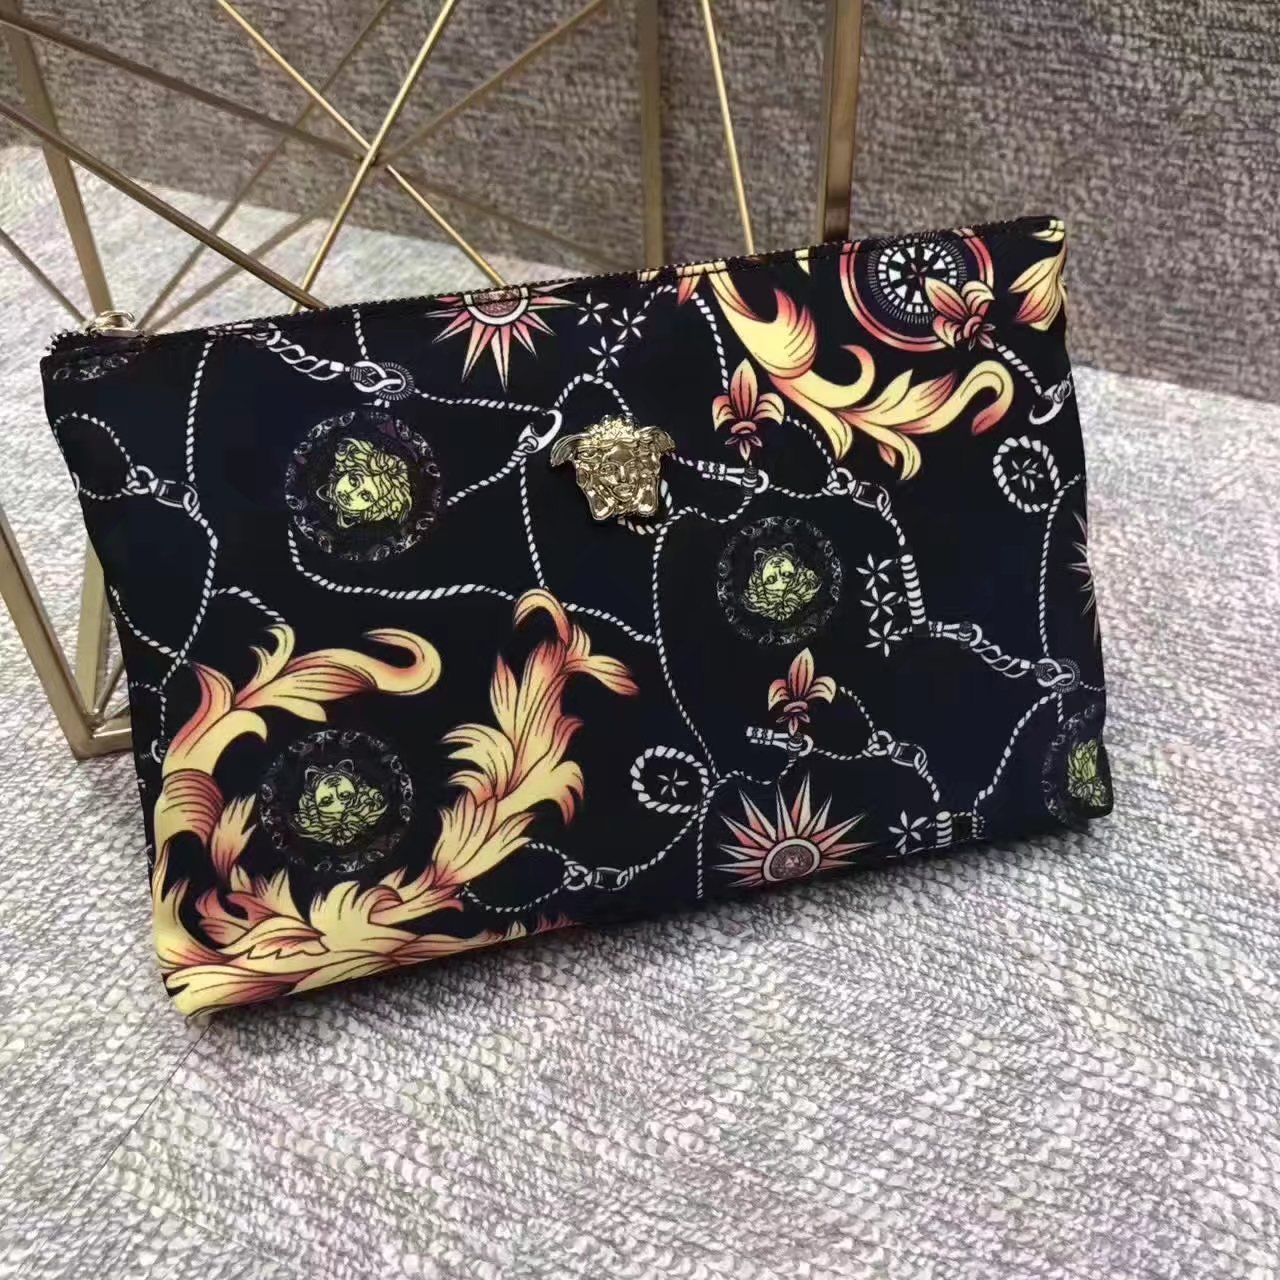 Versace Medusa Printing Leather Clutch Bag